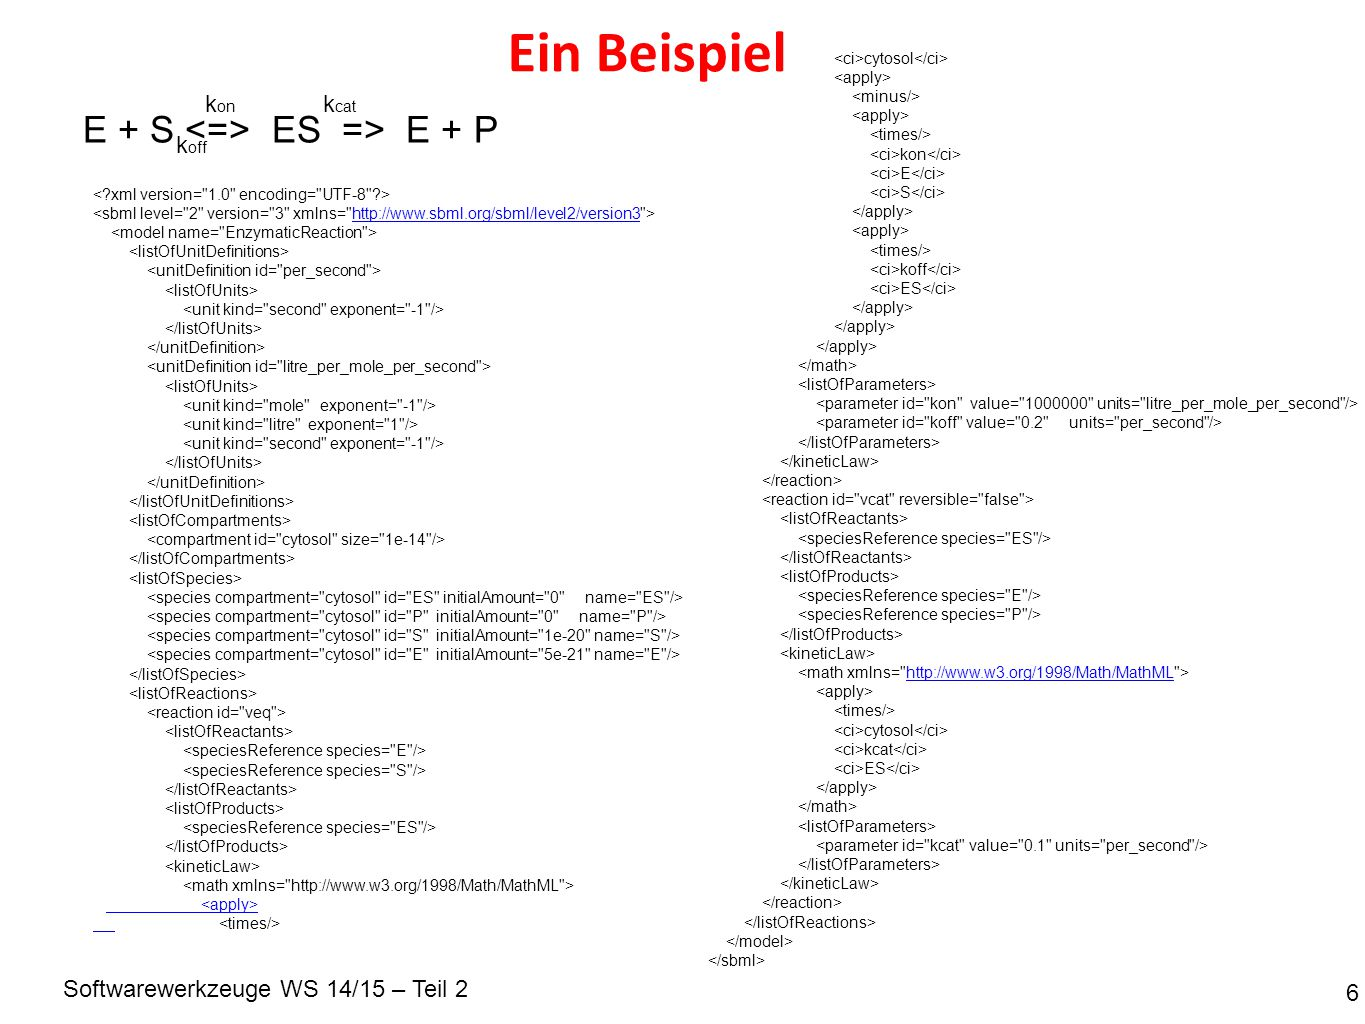 Softwarewerkzeuge WS 14/15 – Teil 2 Ein Beispiel 6 E + S ES => E + P k on k off k cat http://www.sbml.org/sbml/level2/version3 cytosol kon E S koff ES http://www.w3.org/1998/Math/MathML cytosol kcat ES